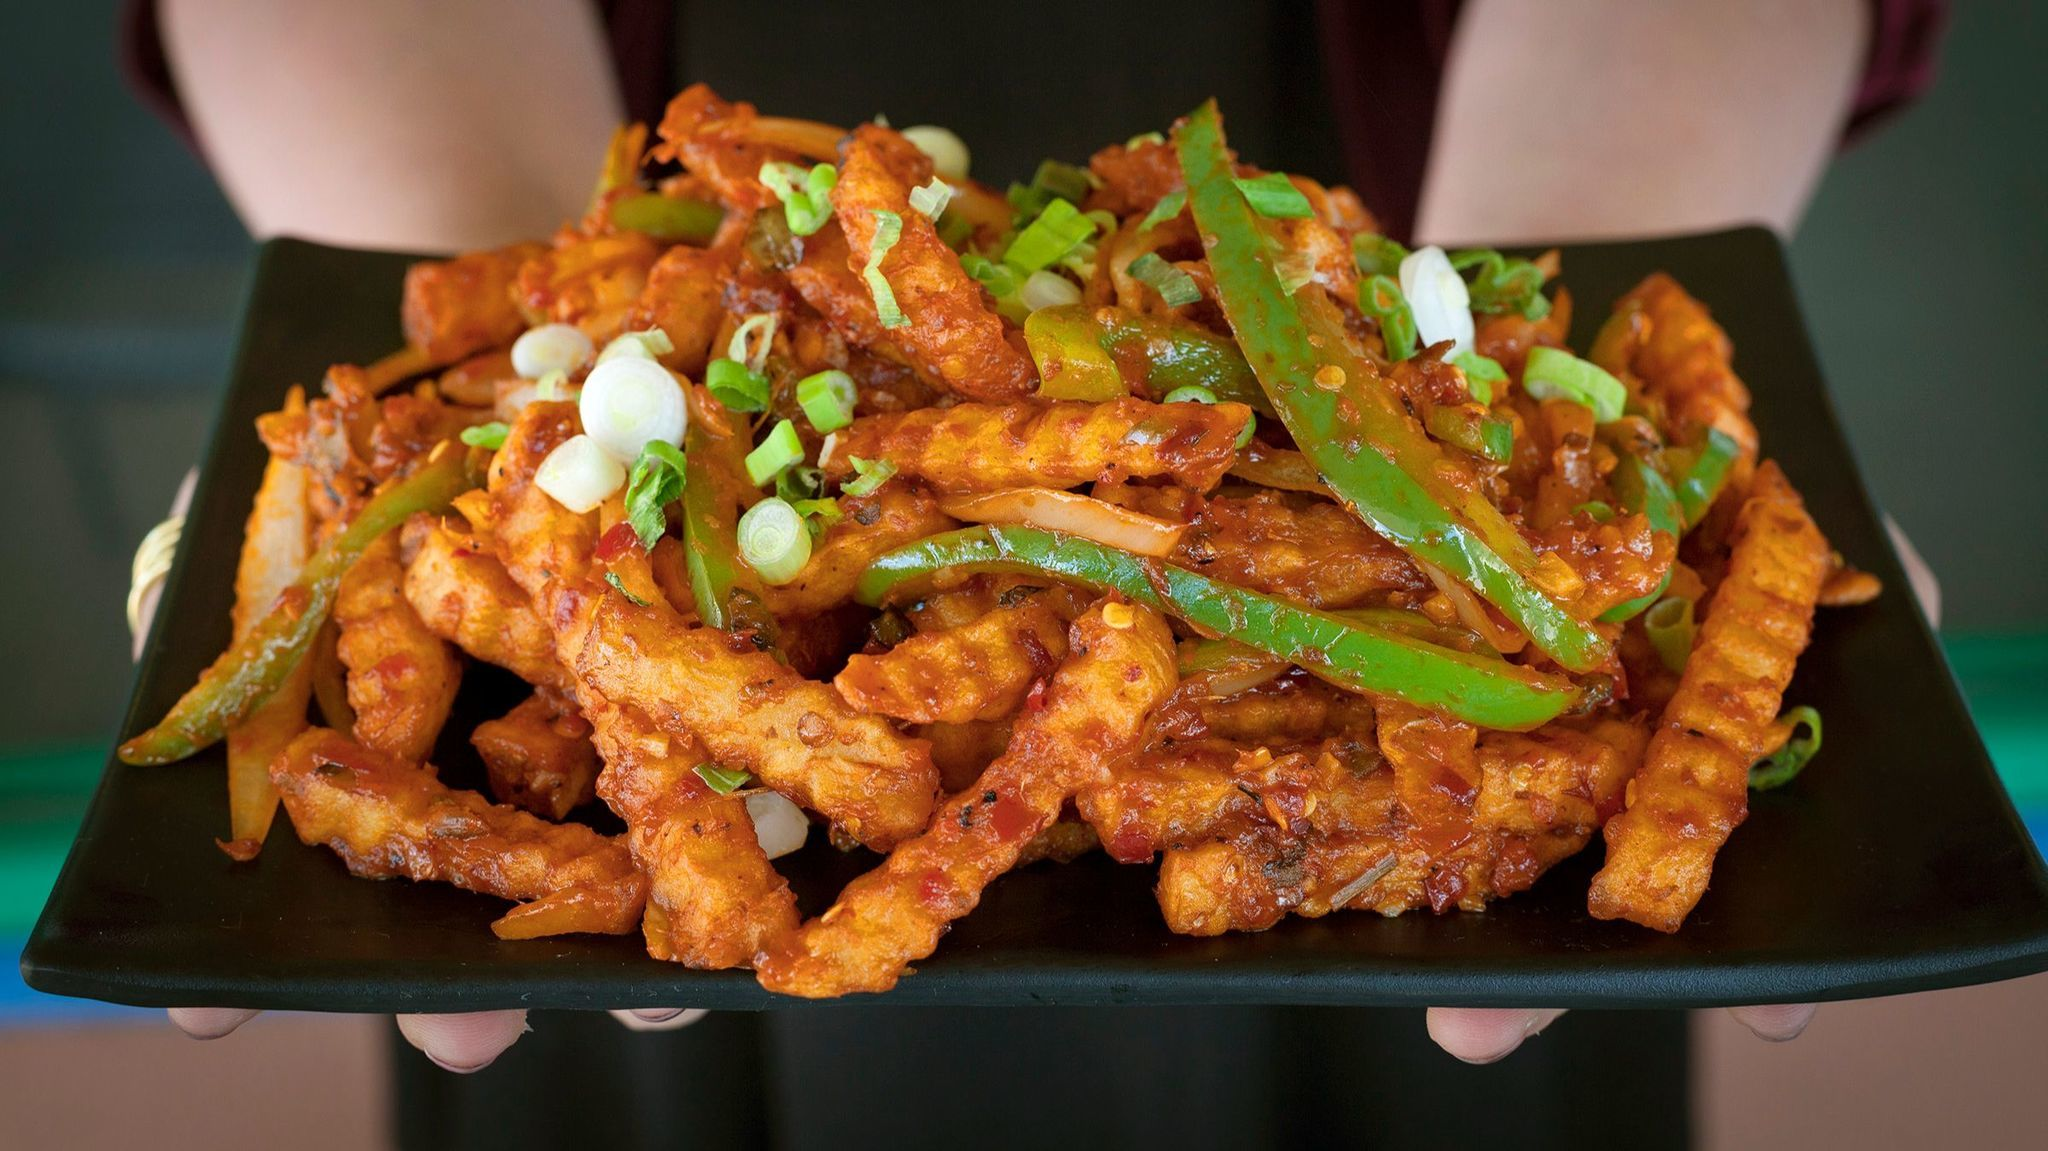 The forkable Szechuan fries at Wok N Tandoor are a delicious example of what happens when Indo-Chinese cuisine lands in O.C.